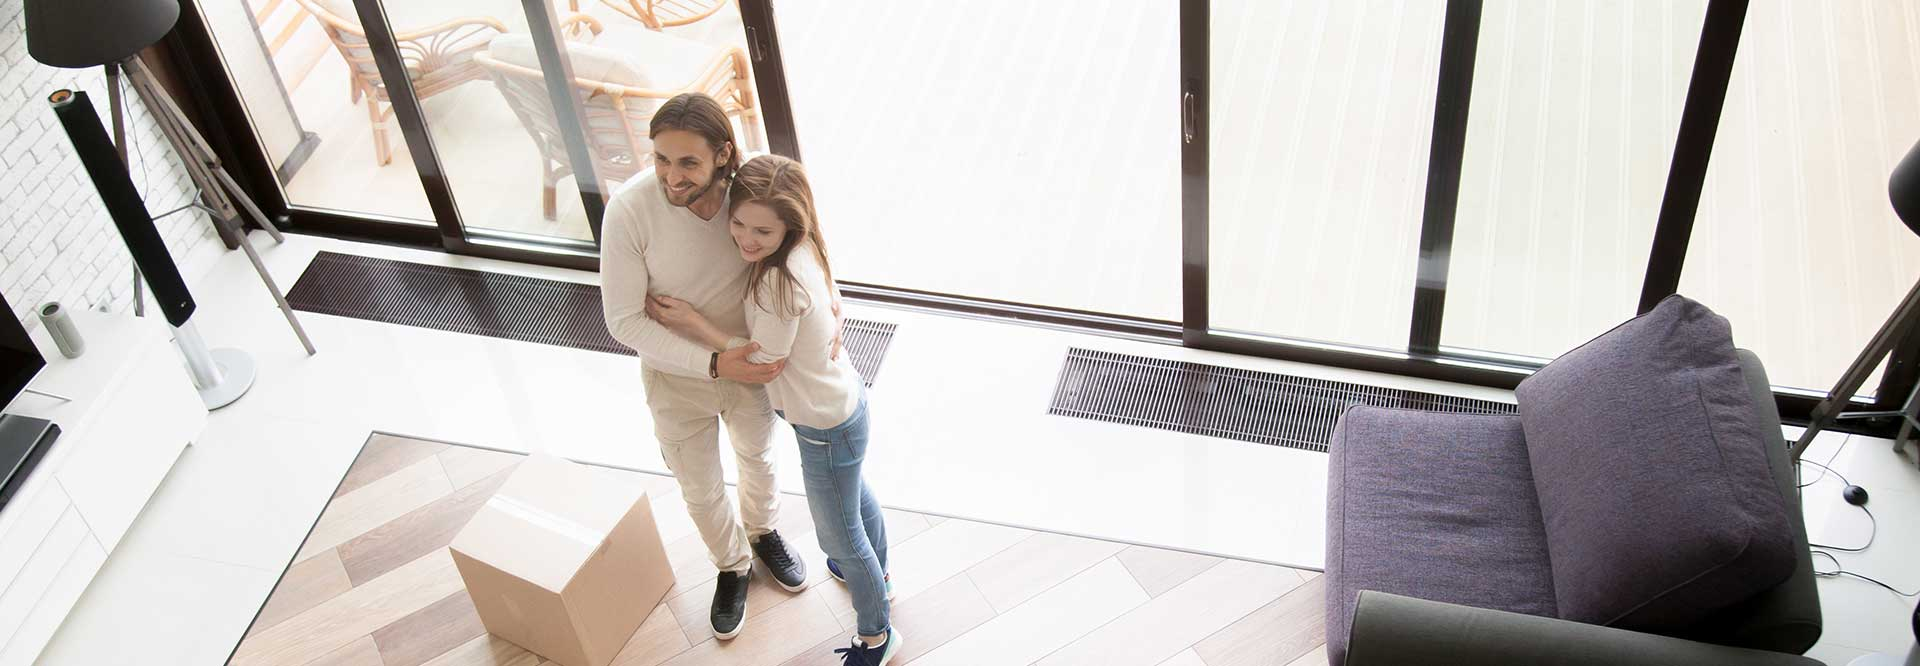 Buying for the first time? Questions to ask.